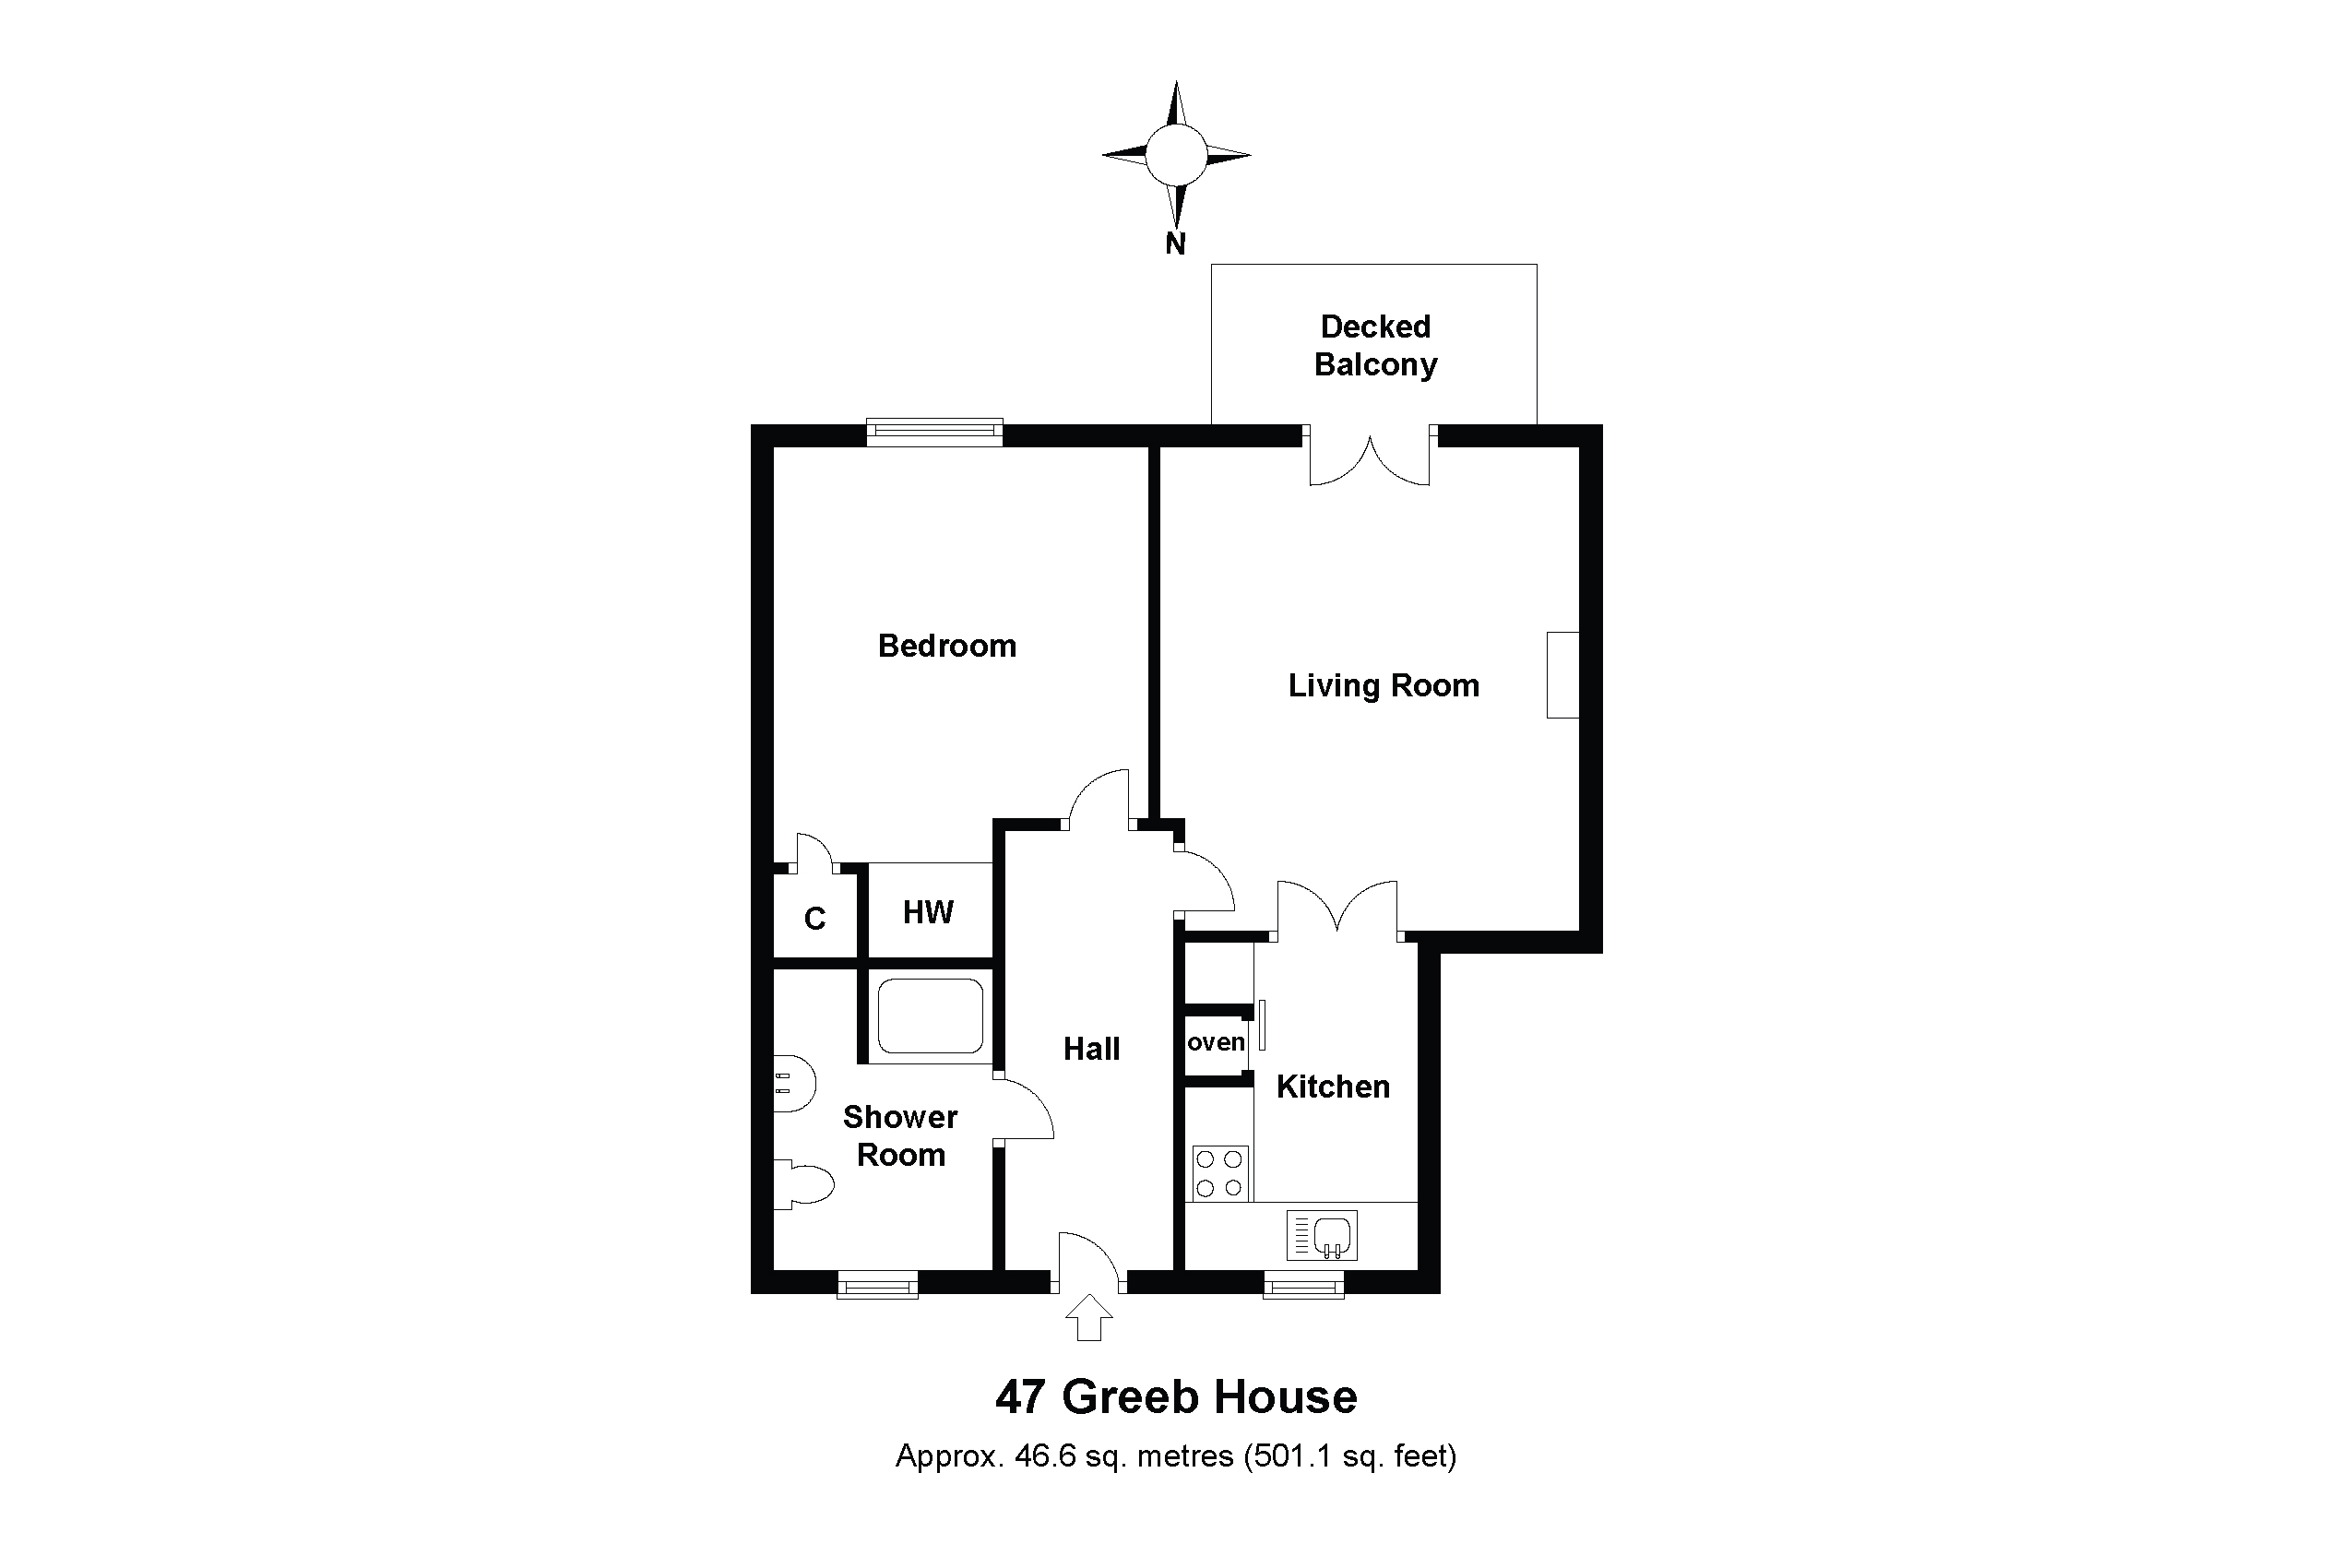 47 Greeb House Floorplan